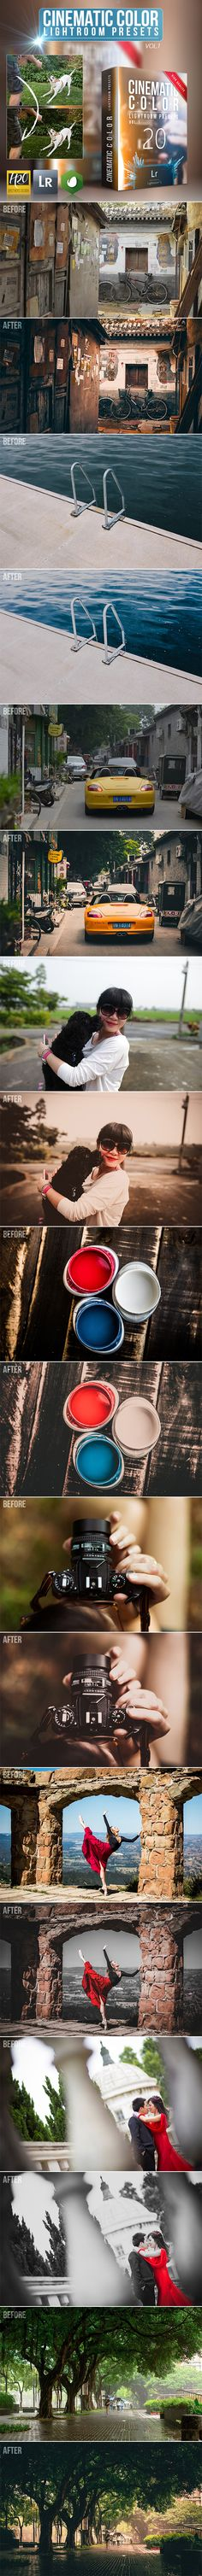 20 Cinematic Color Lightroom Presets #photography Download: http://graphicriver.net/item/20-cinematic-color-lightroom-presets/11894873?ref=ksioks